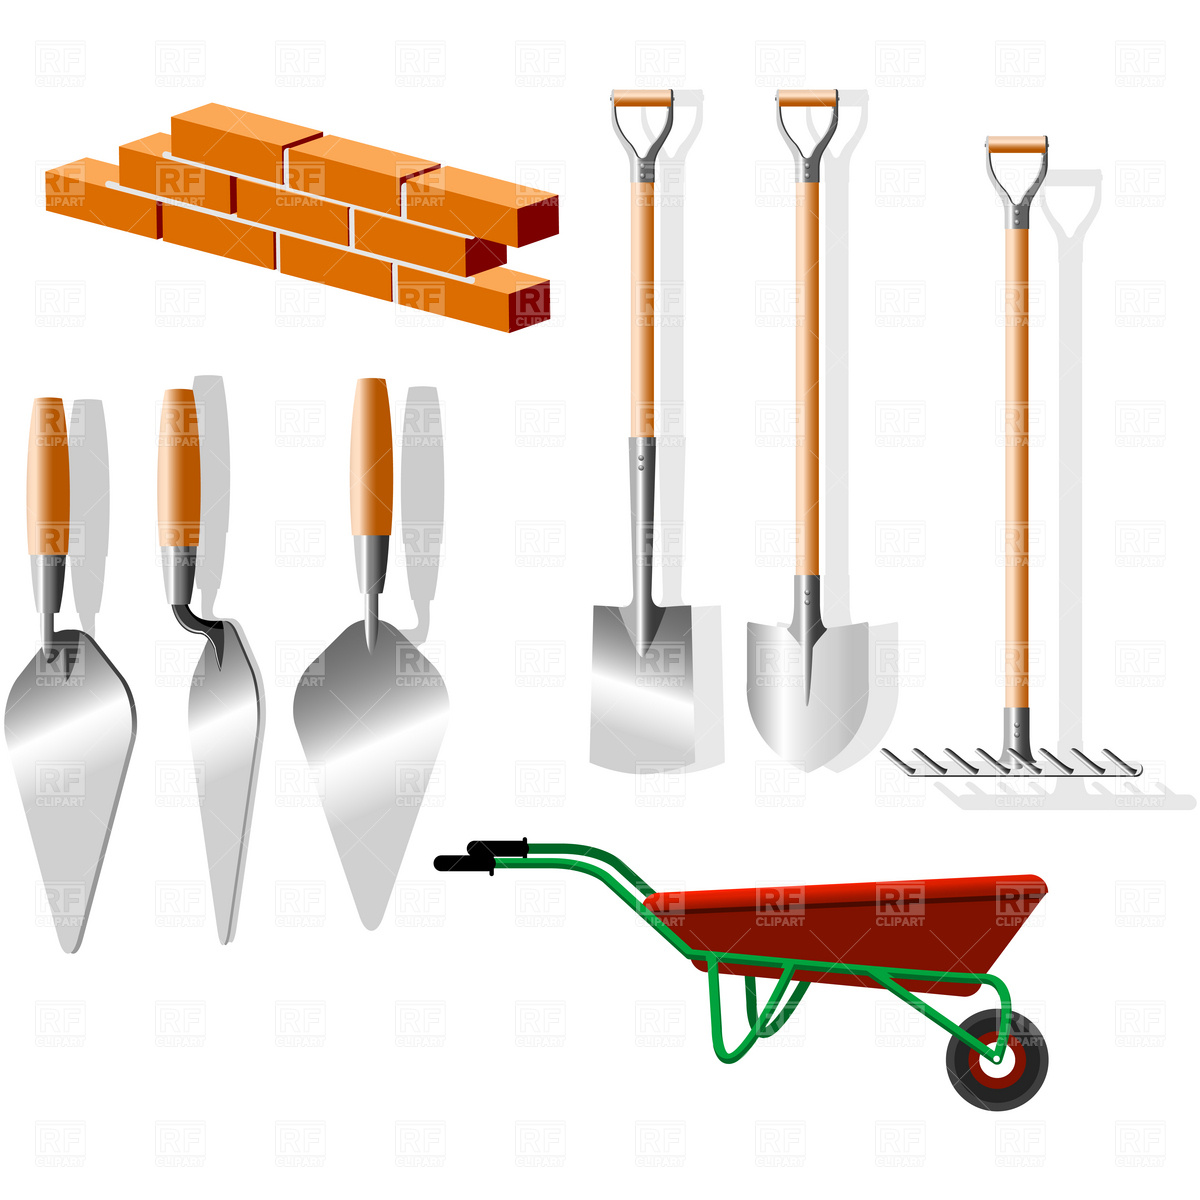 Building Implements   Wheelbarrow Trowel And Shovels 4588 Download